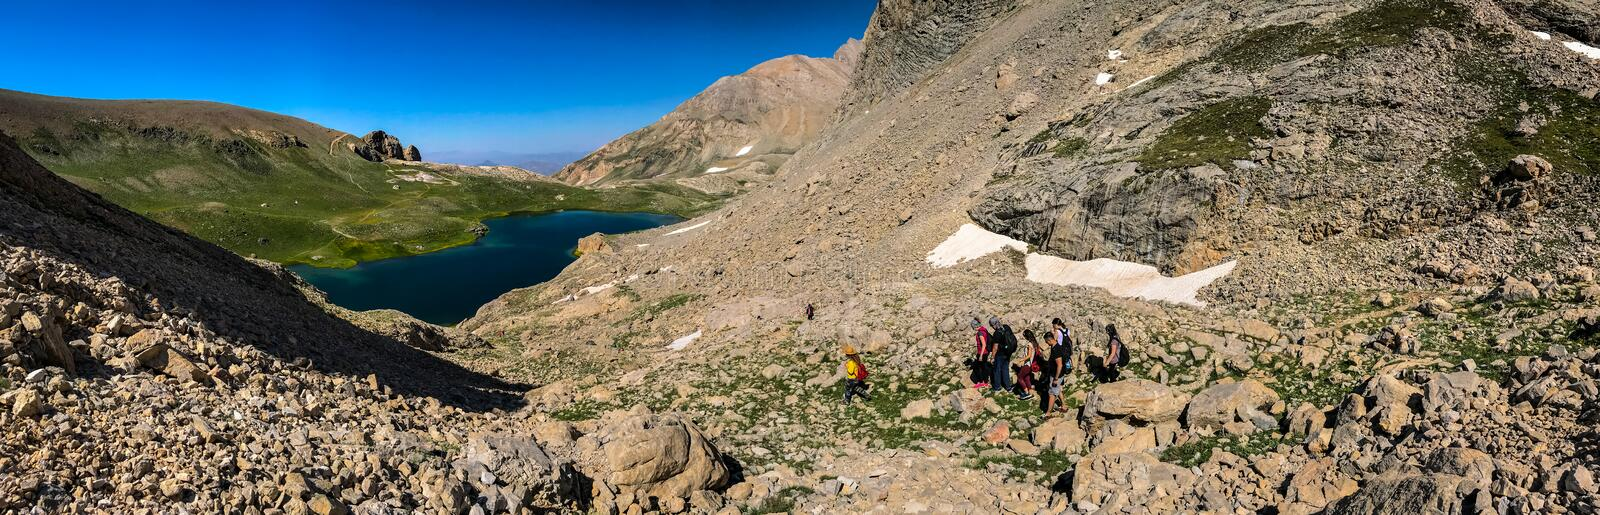 Panoramic view of Bolkar Mountain and Taurus Mountain, Nigde, Turkey. Volcanic crater lake, ` `black lake.  stock illustration